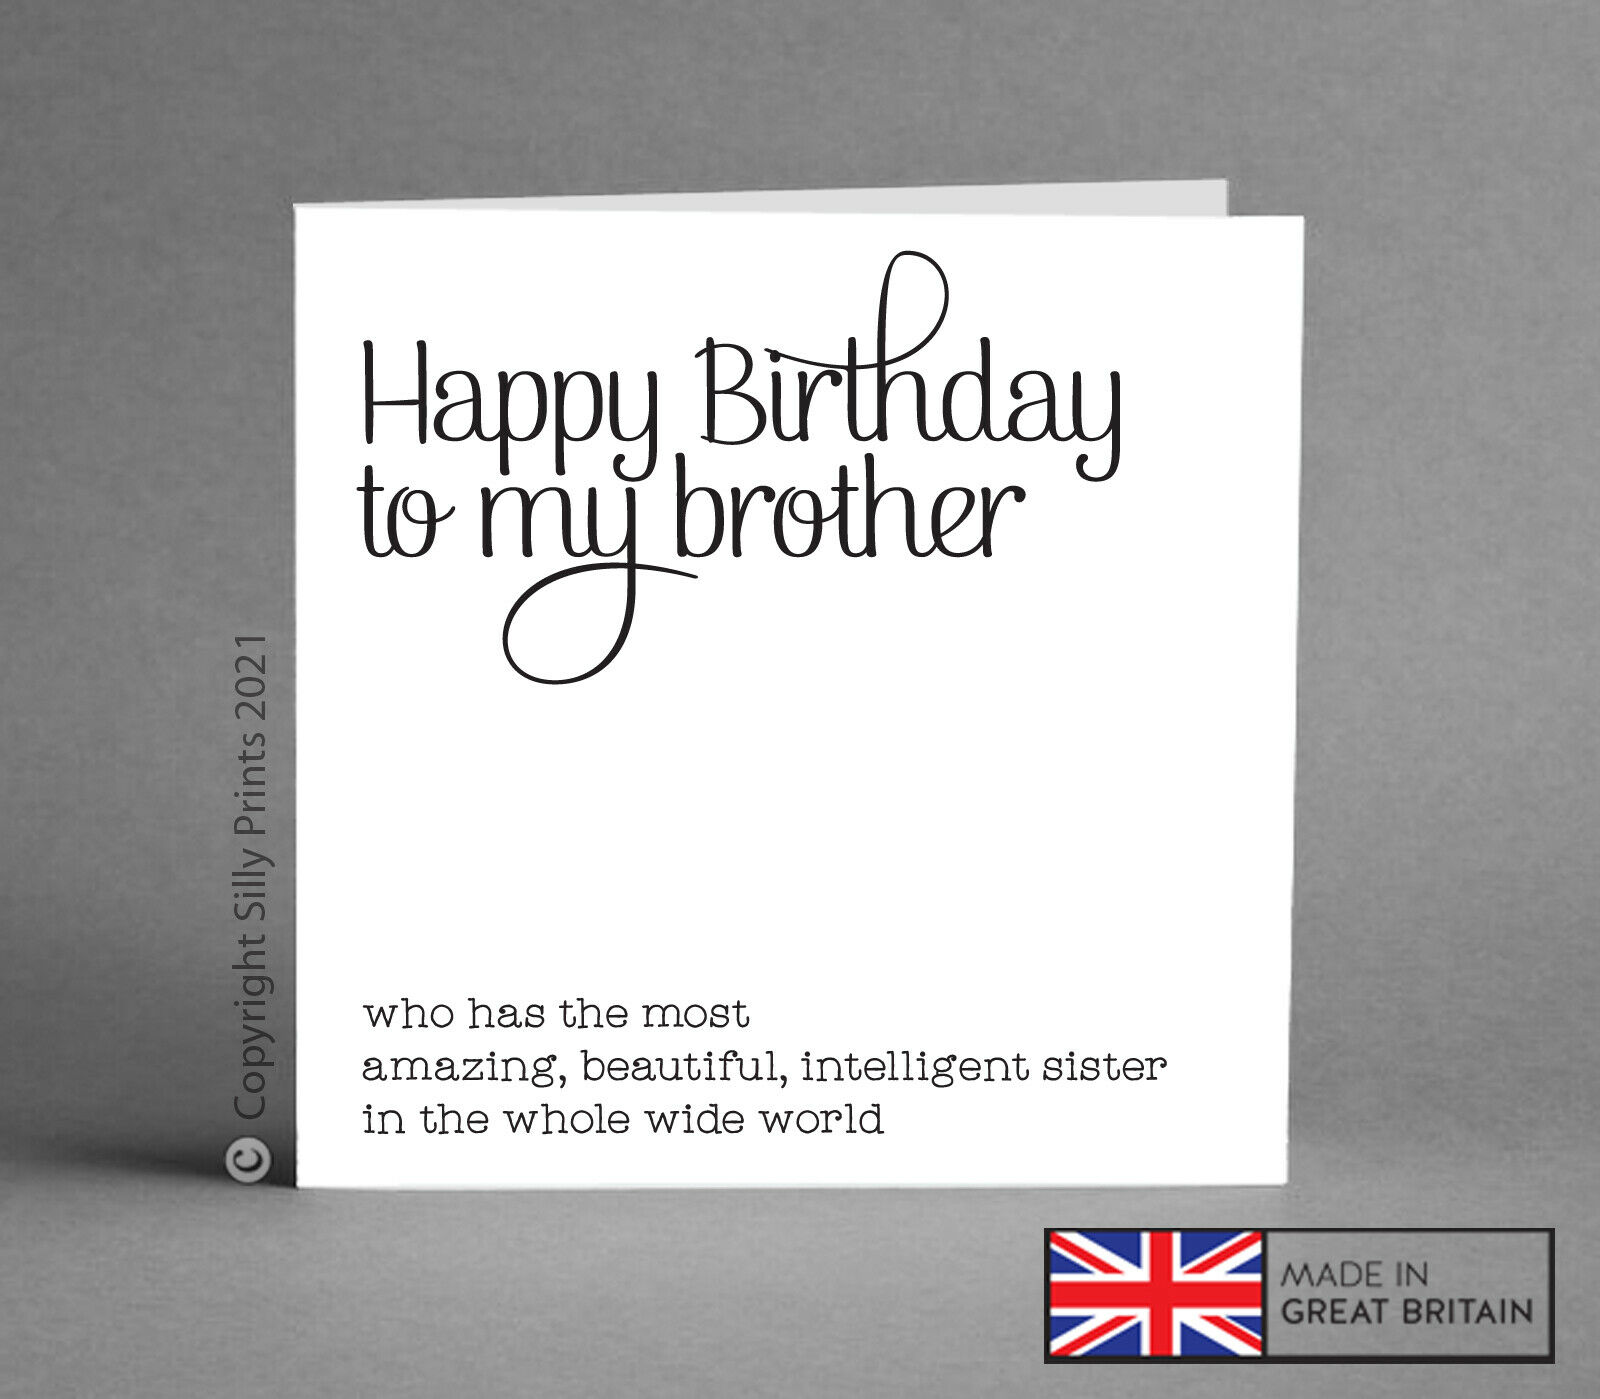 Birthday Cards For Brother From Best Sister Funny Cheeky Greetings